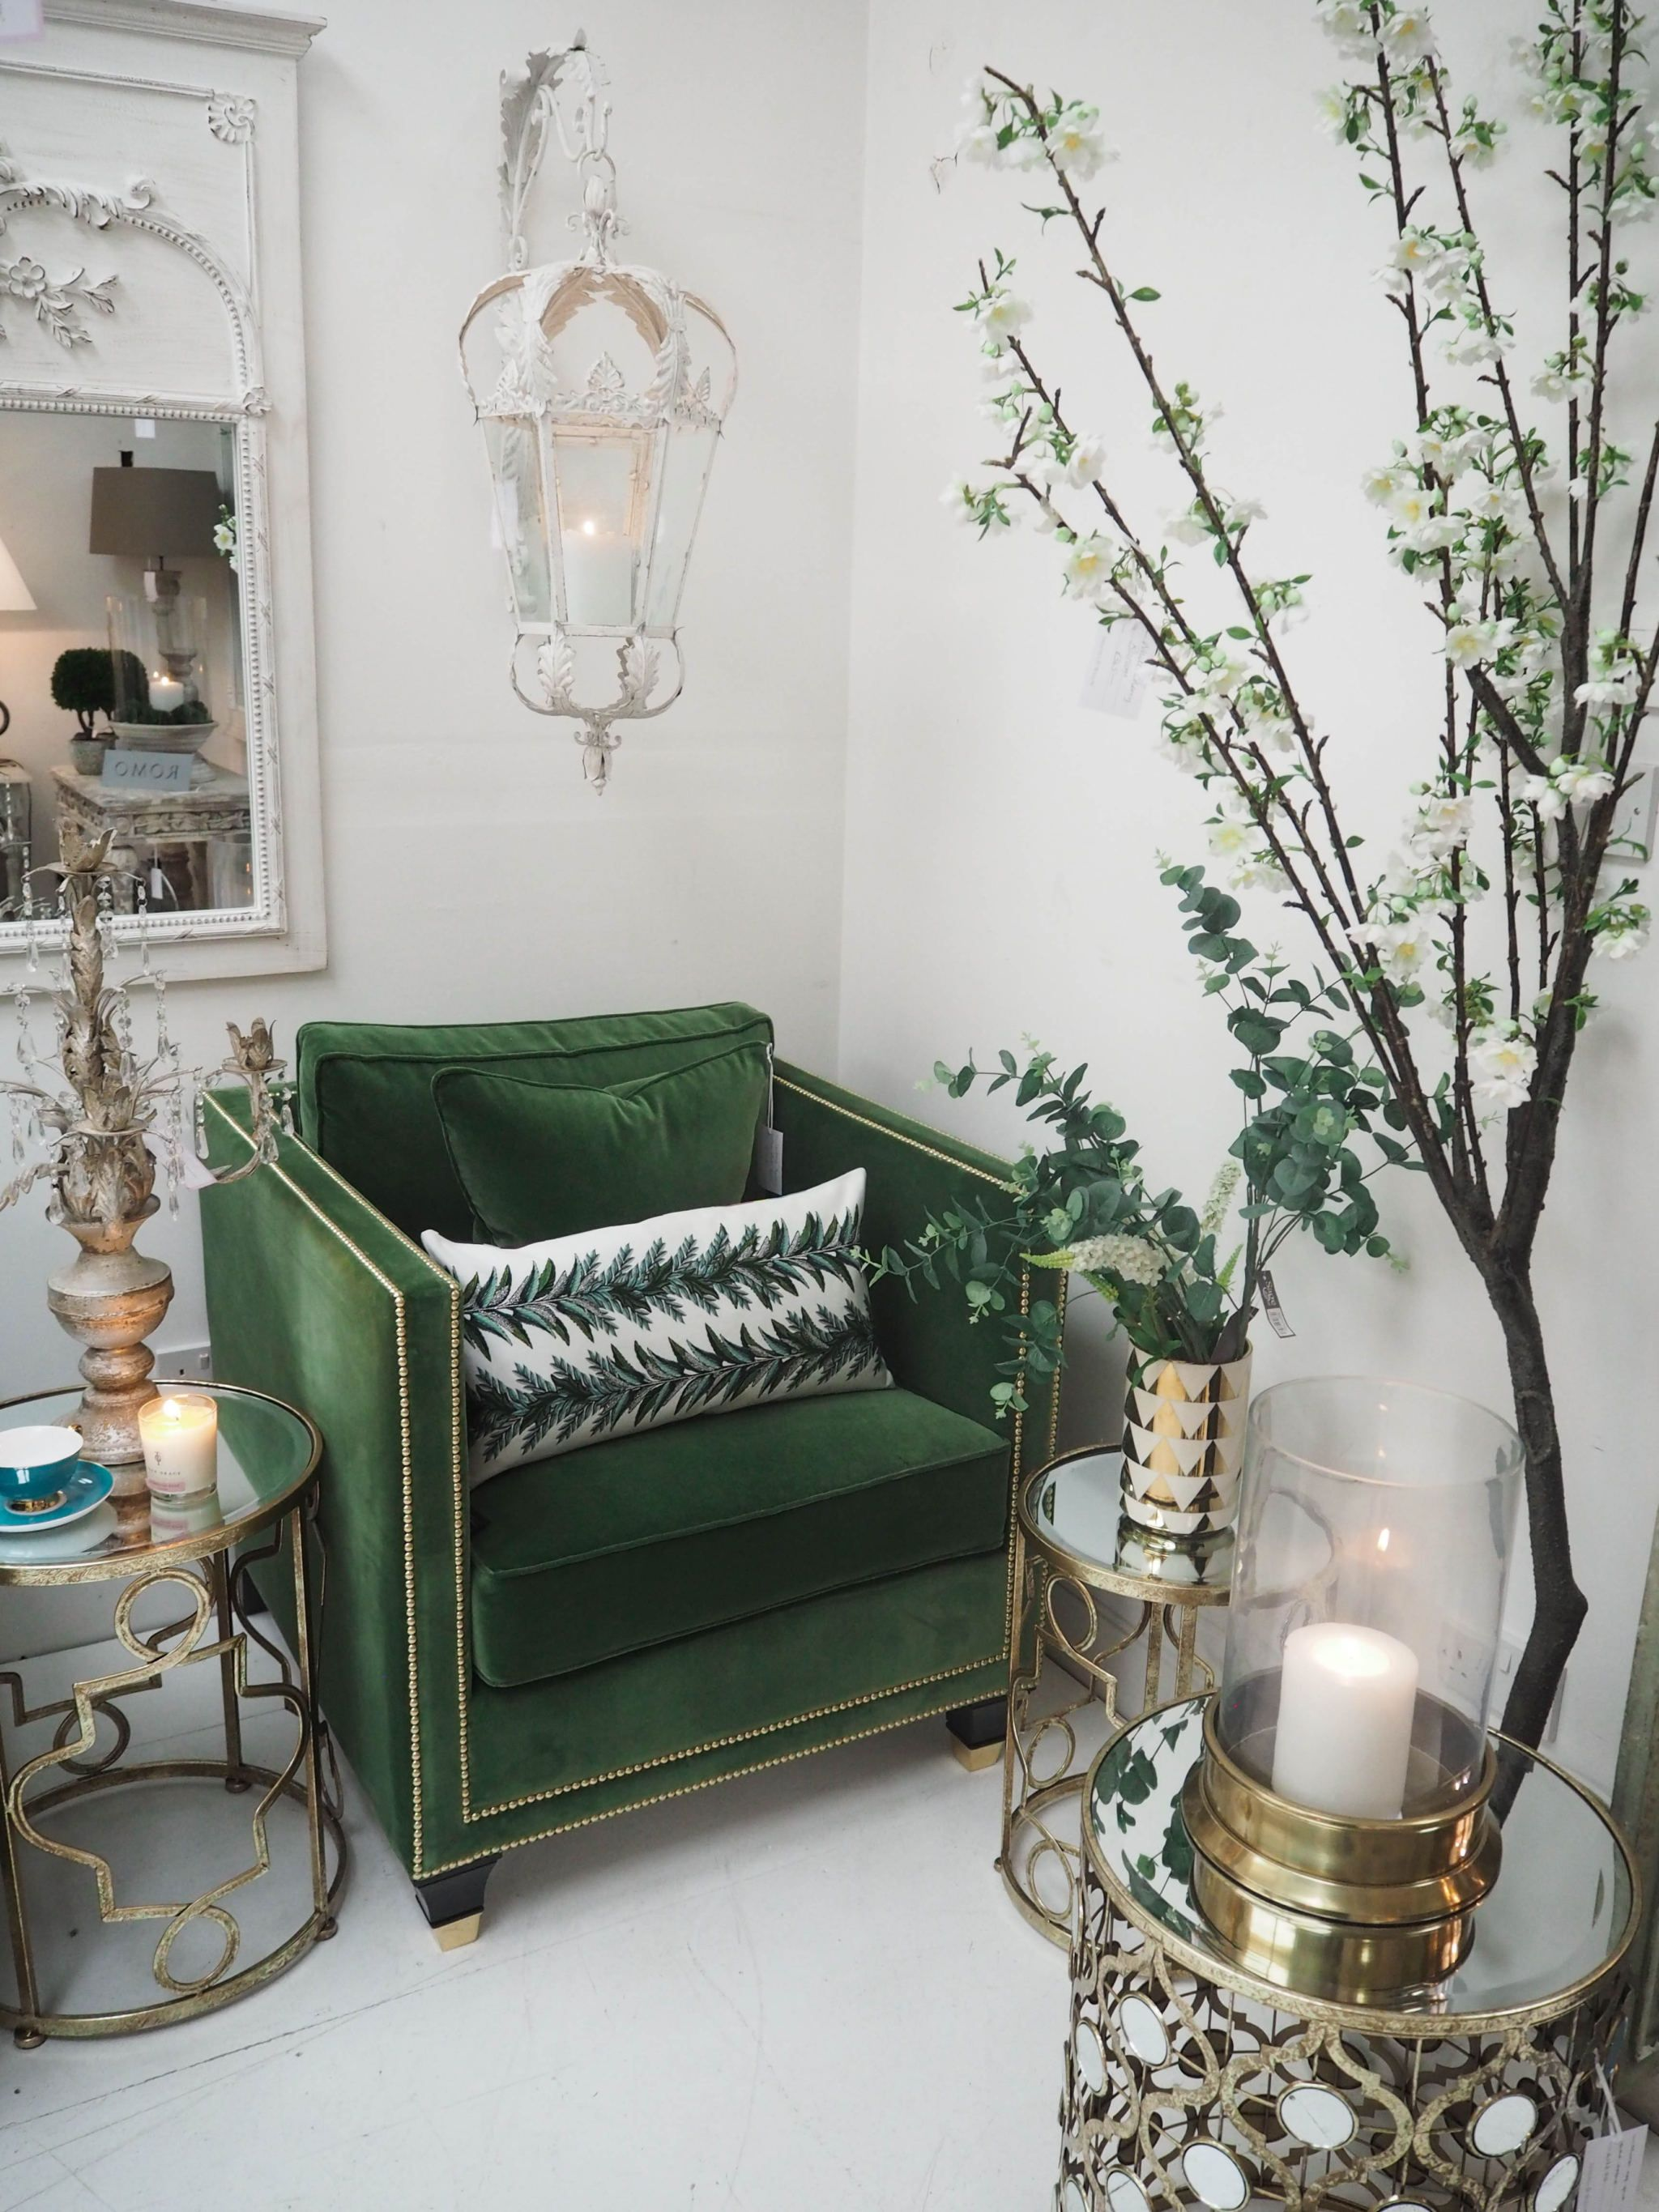 Find out how to create luxurious home décor with these simple tips ...